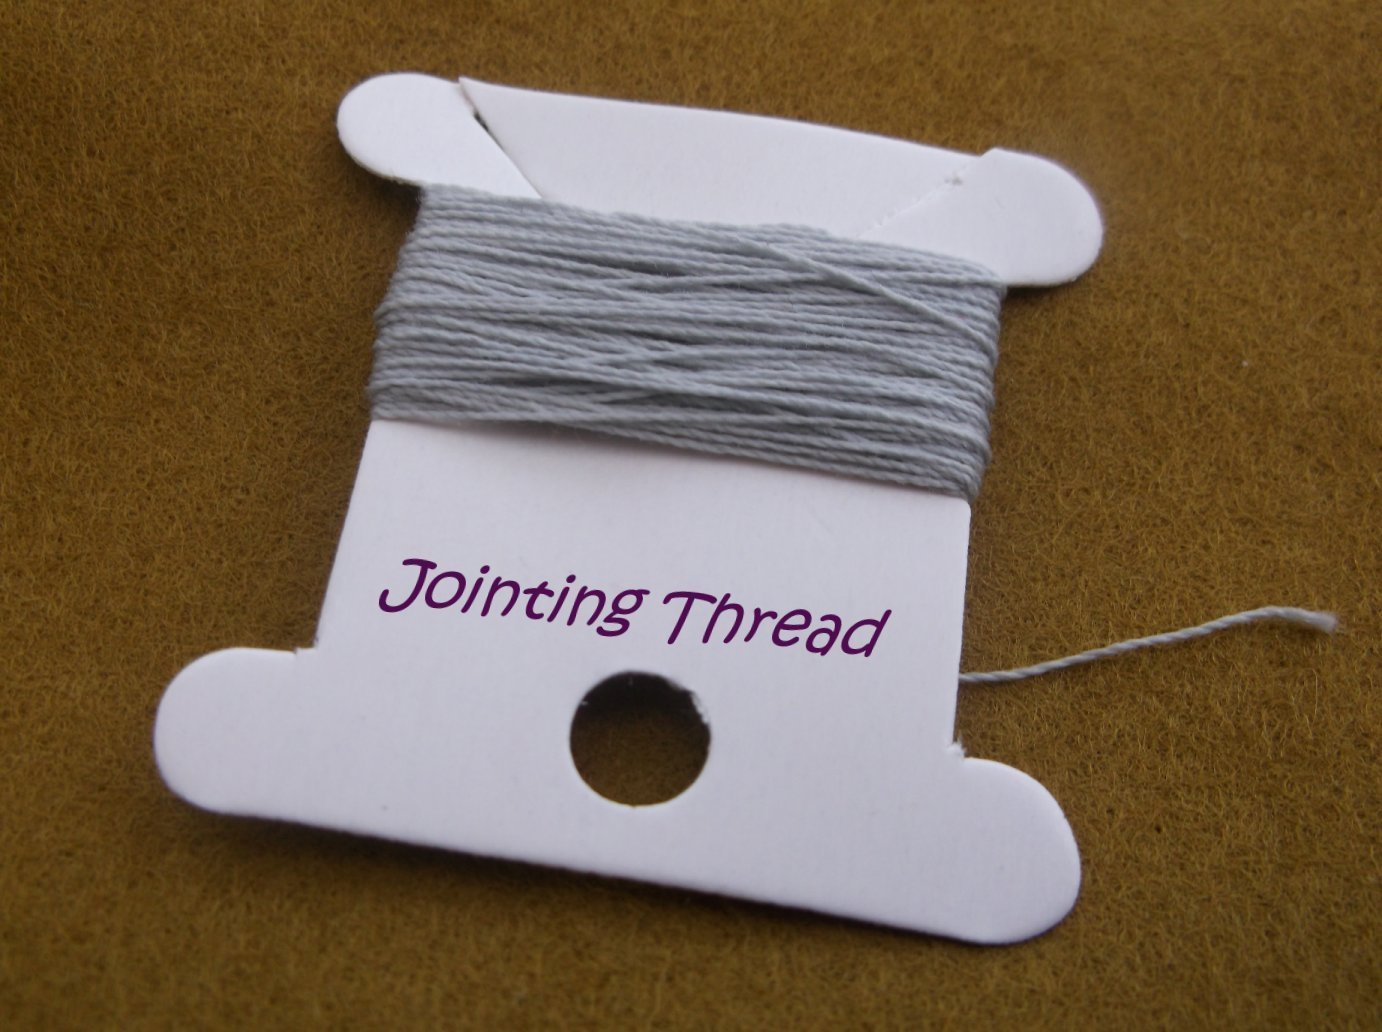 Jointing Thread - 4 metres carded